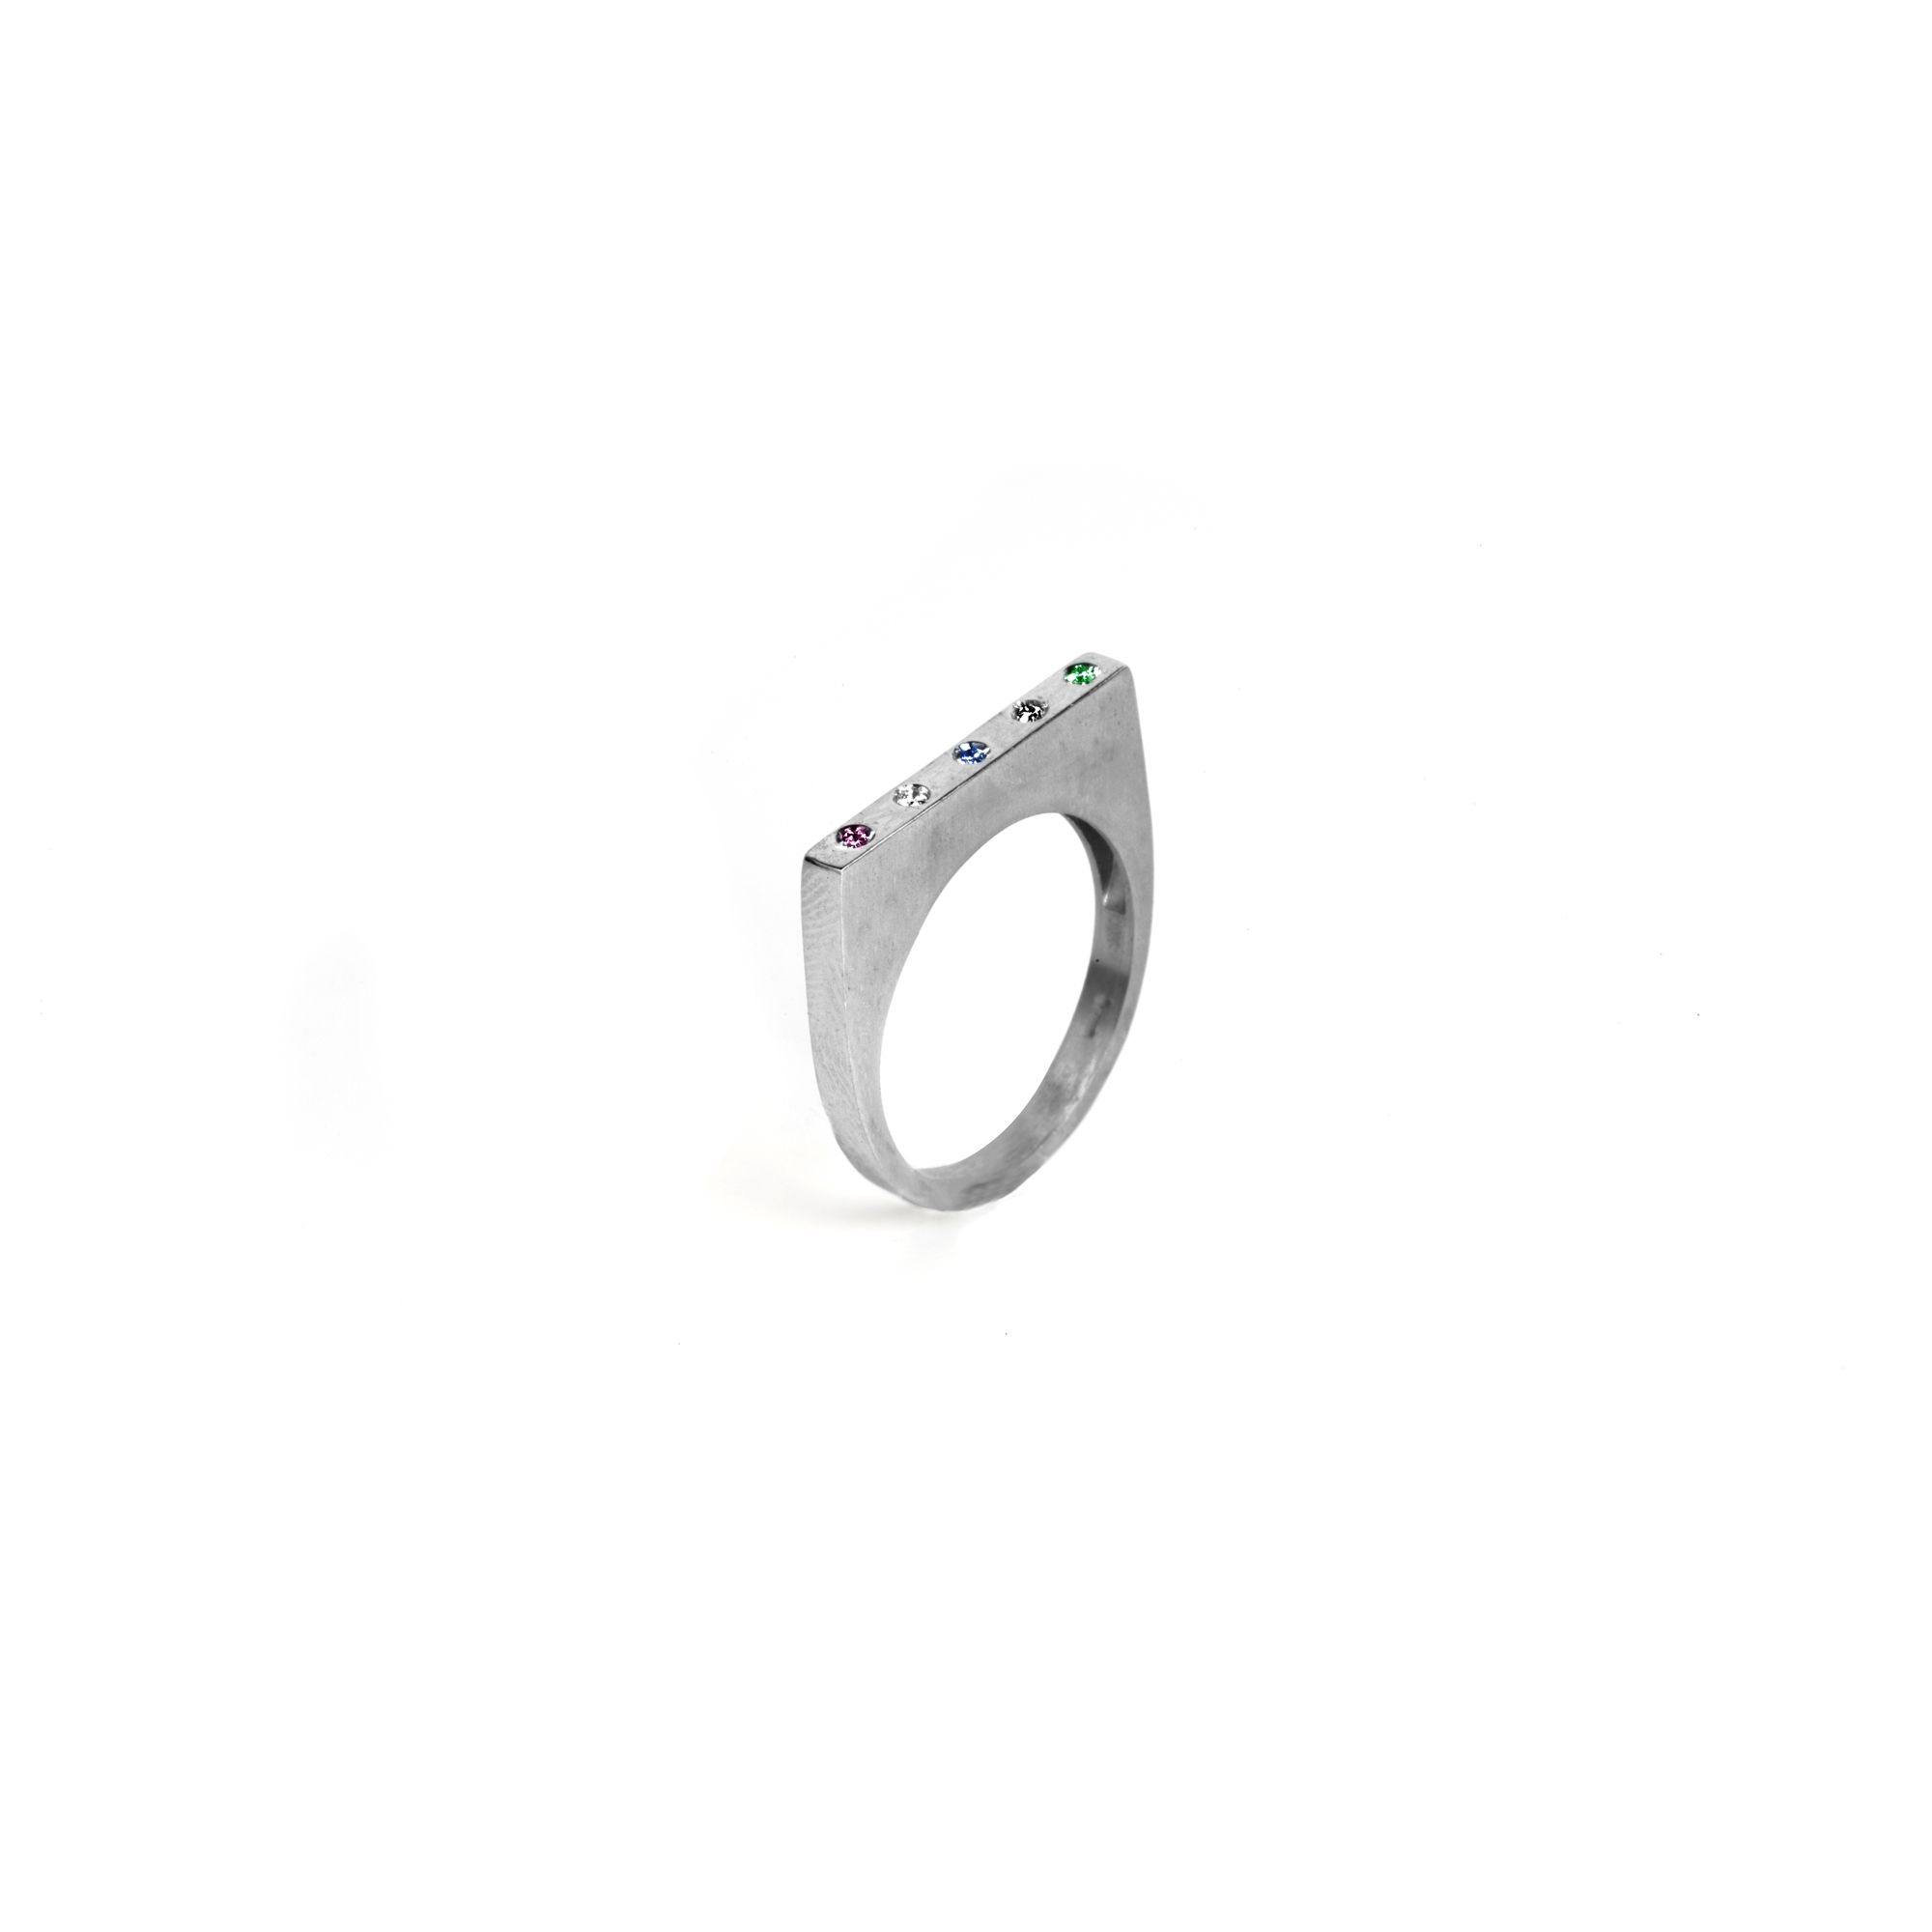 'Congiunzioni' modular square ring Silver ring with colored sapphires